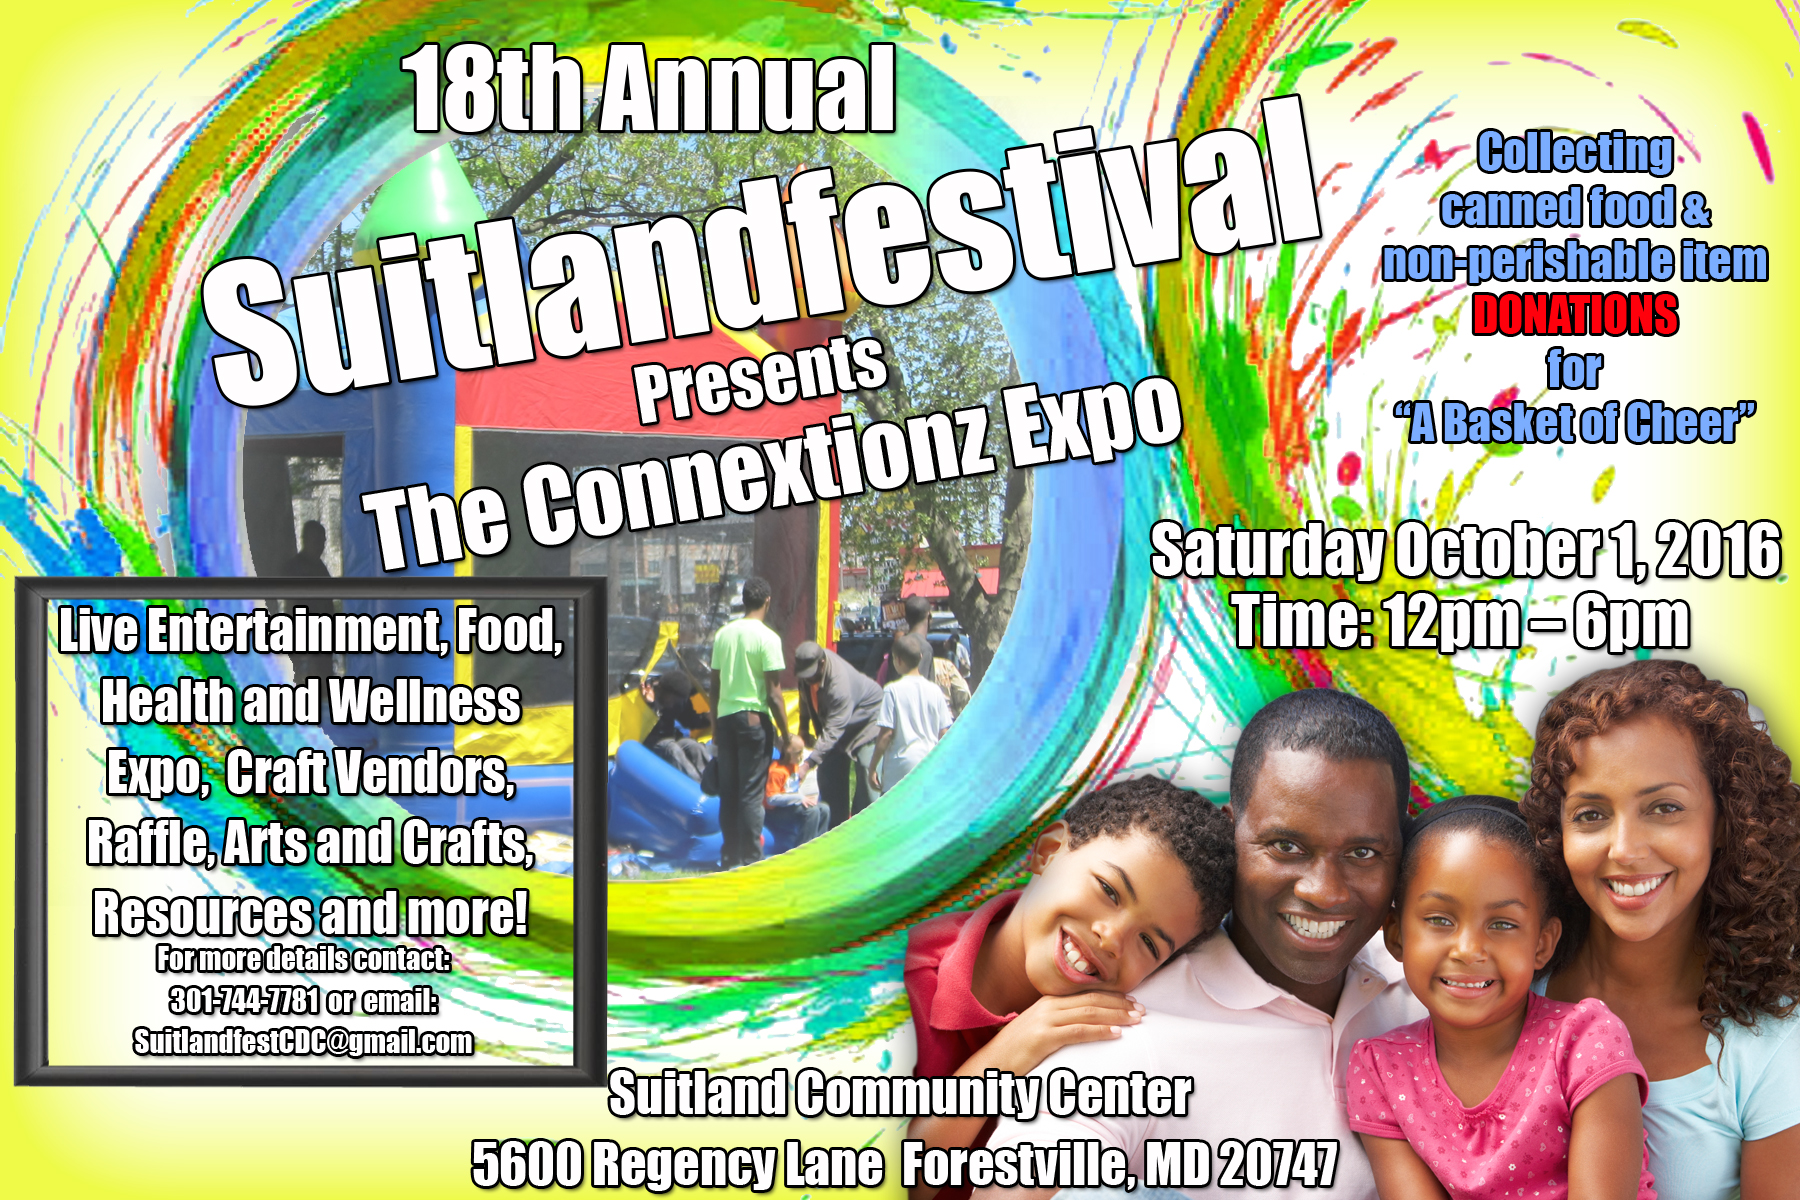 18th Annual Suitlandfest flyer_final